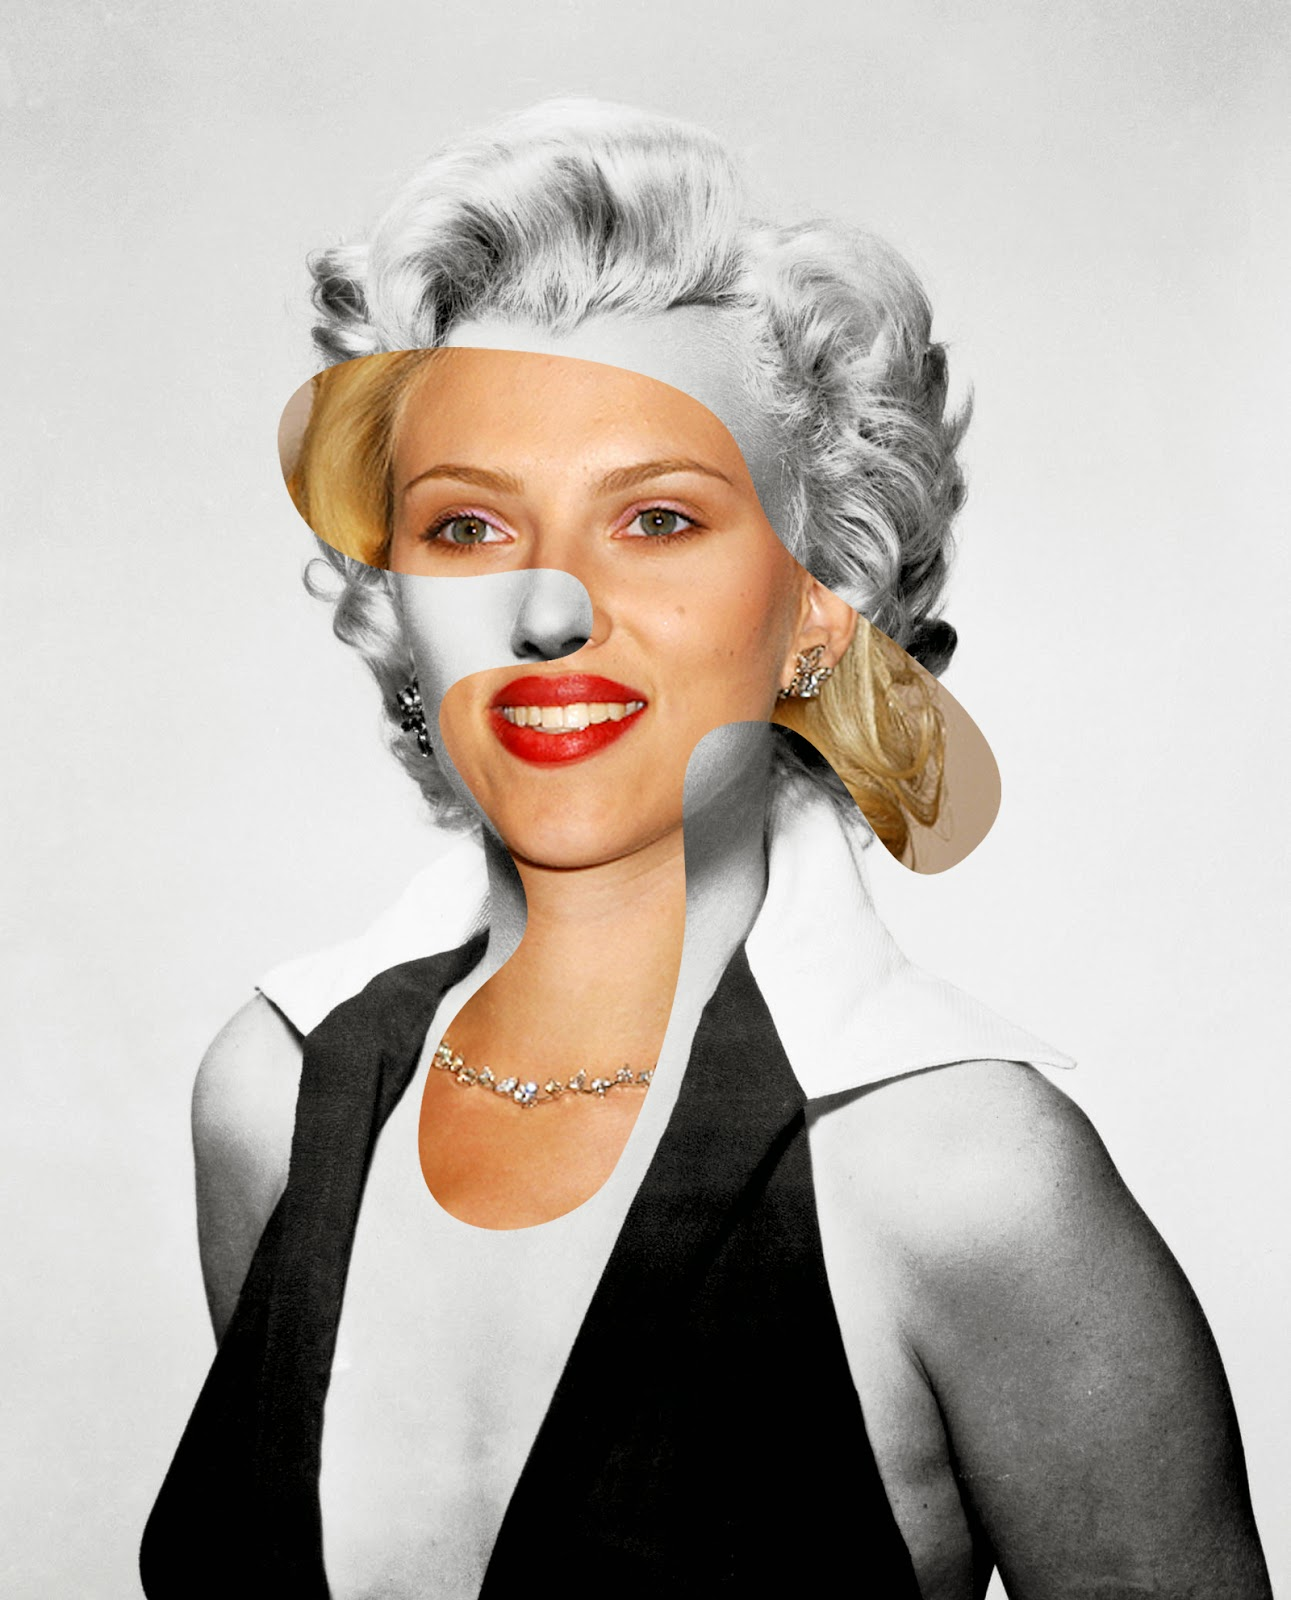 05-Marilyn-Monroe-Scarlett-Johansson-icon-Actor-Mashup-Photos-George-Chamoun-www-designstack-co